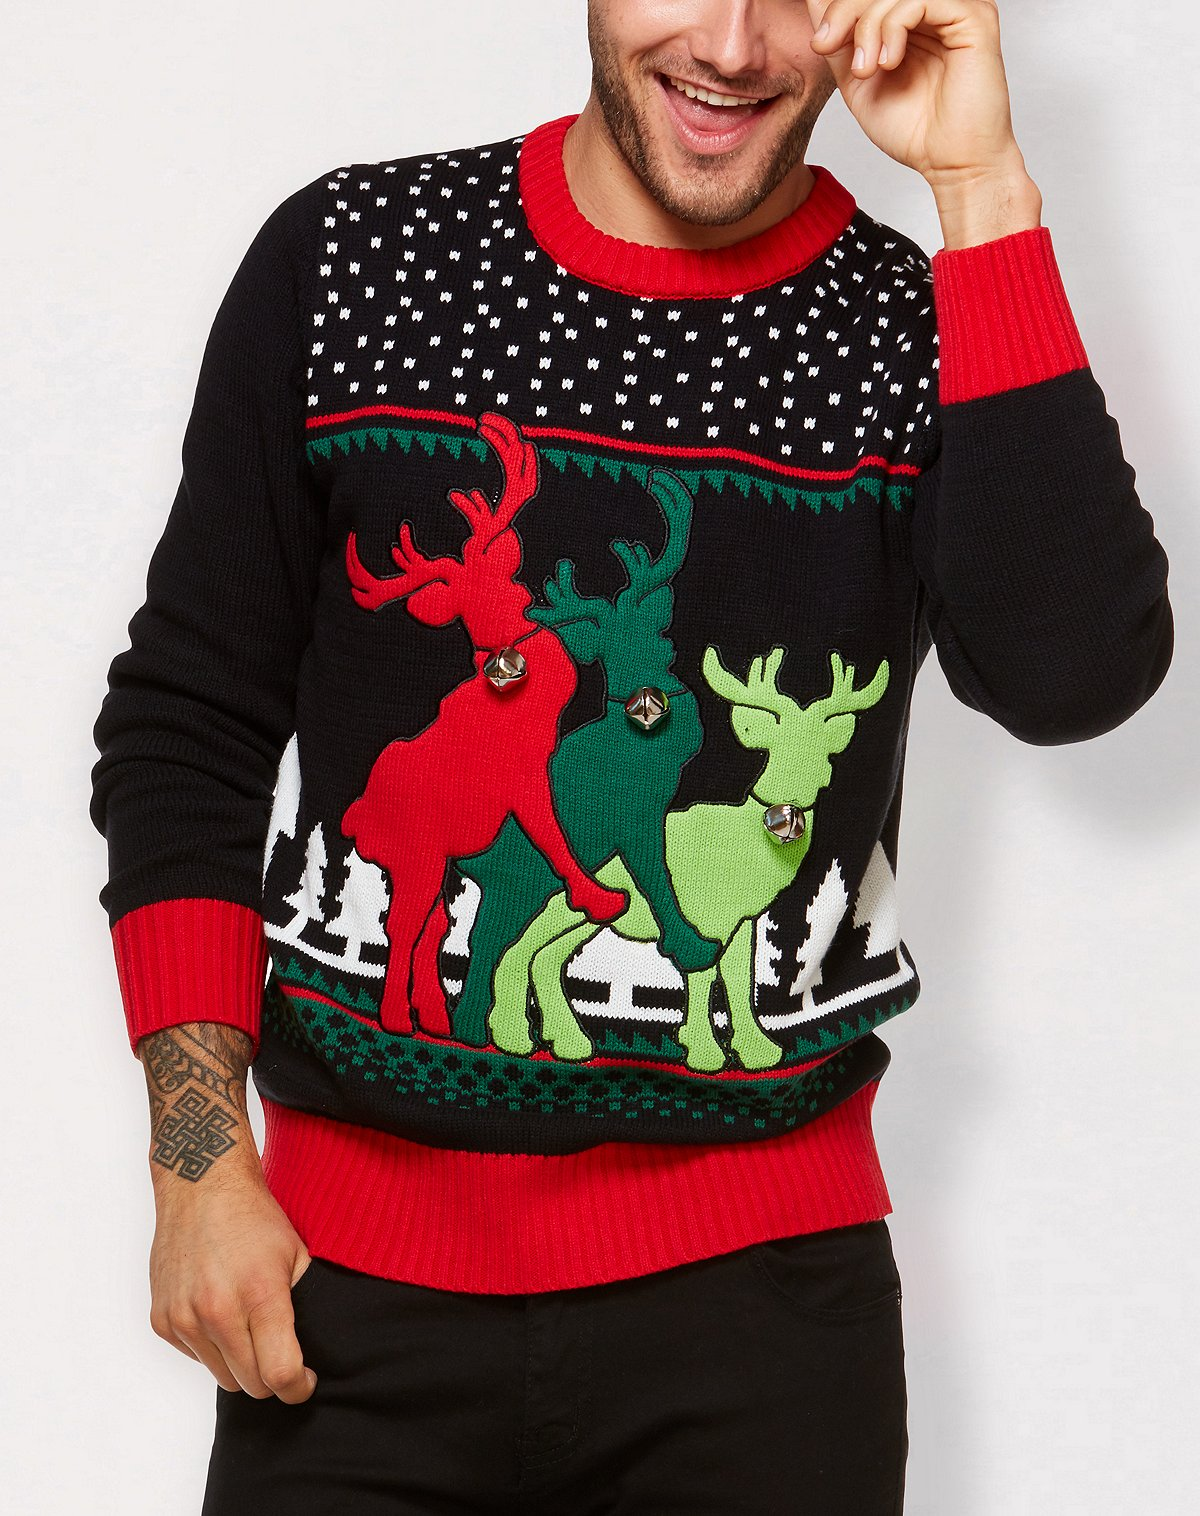 Spencer's Threesome Reindeer Ugly Christmas Sweater